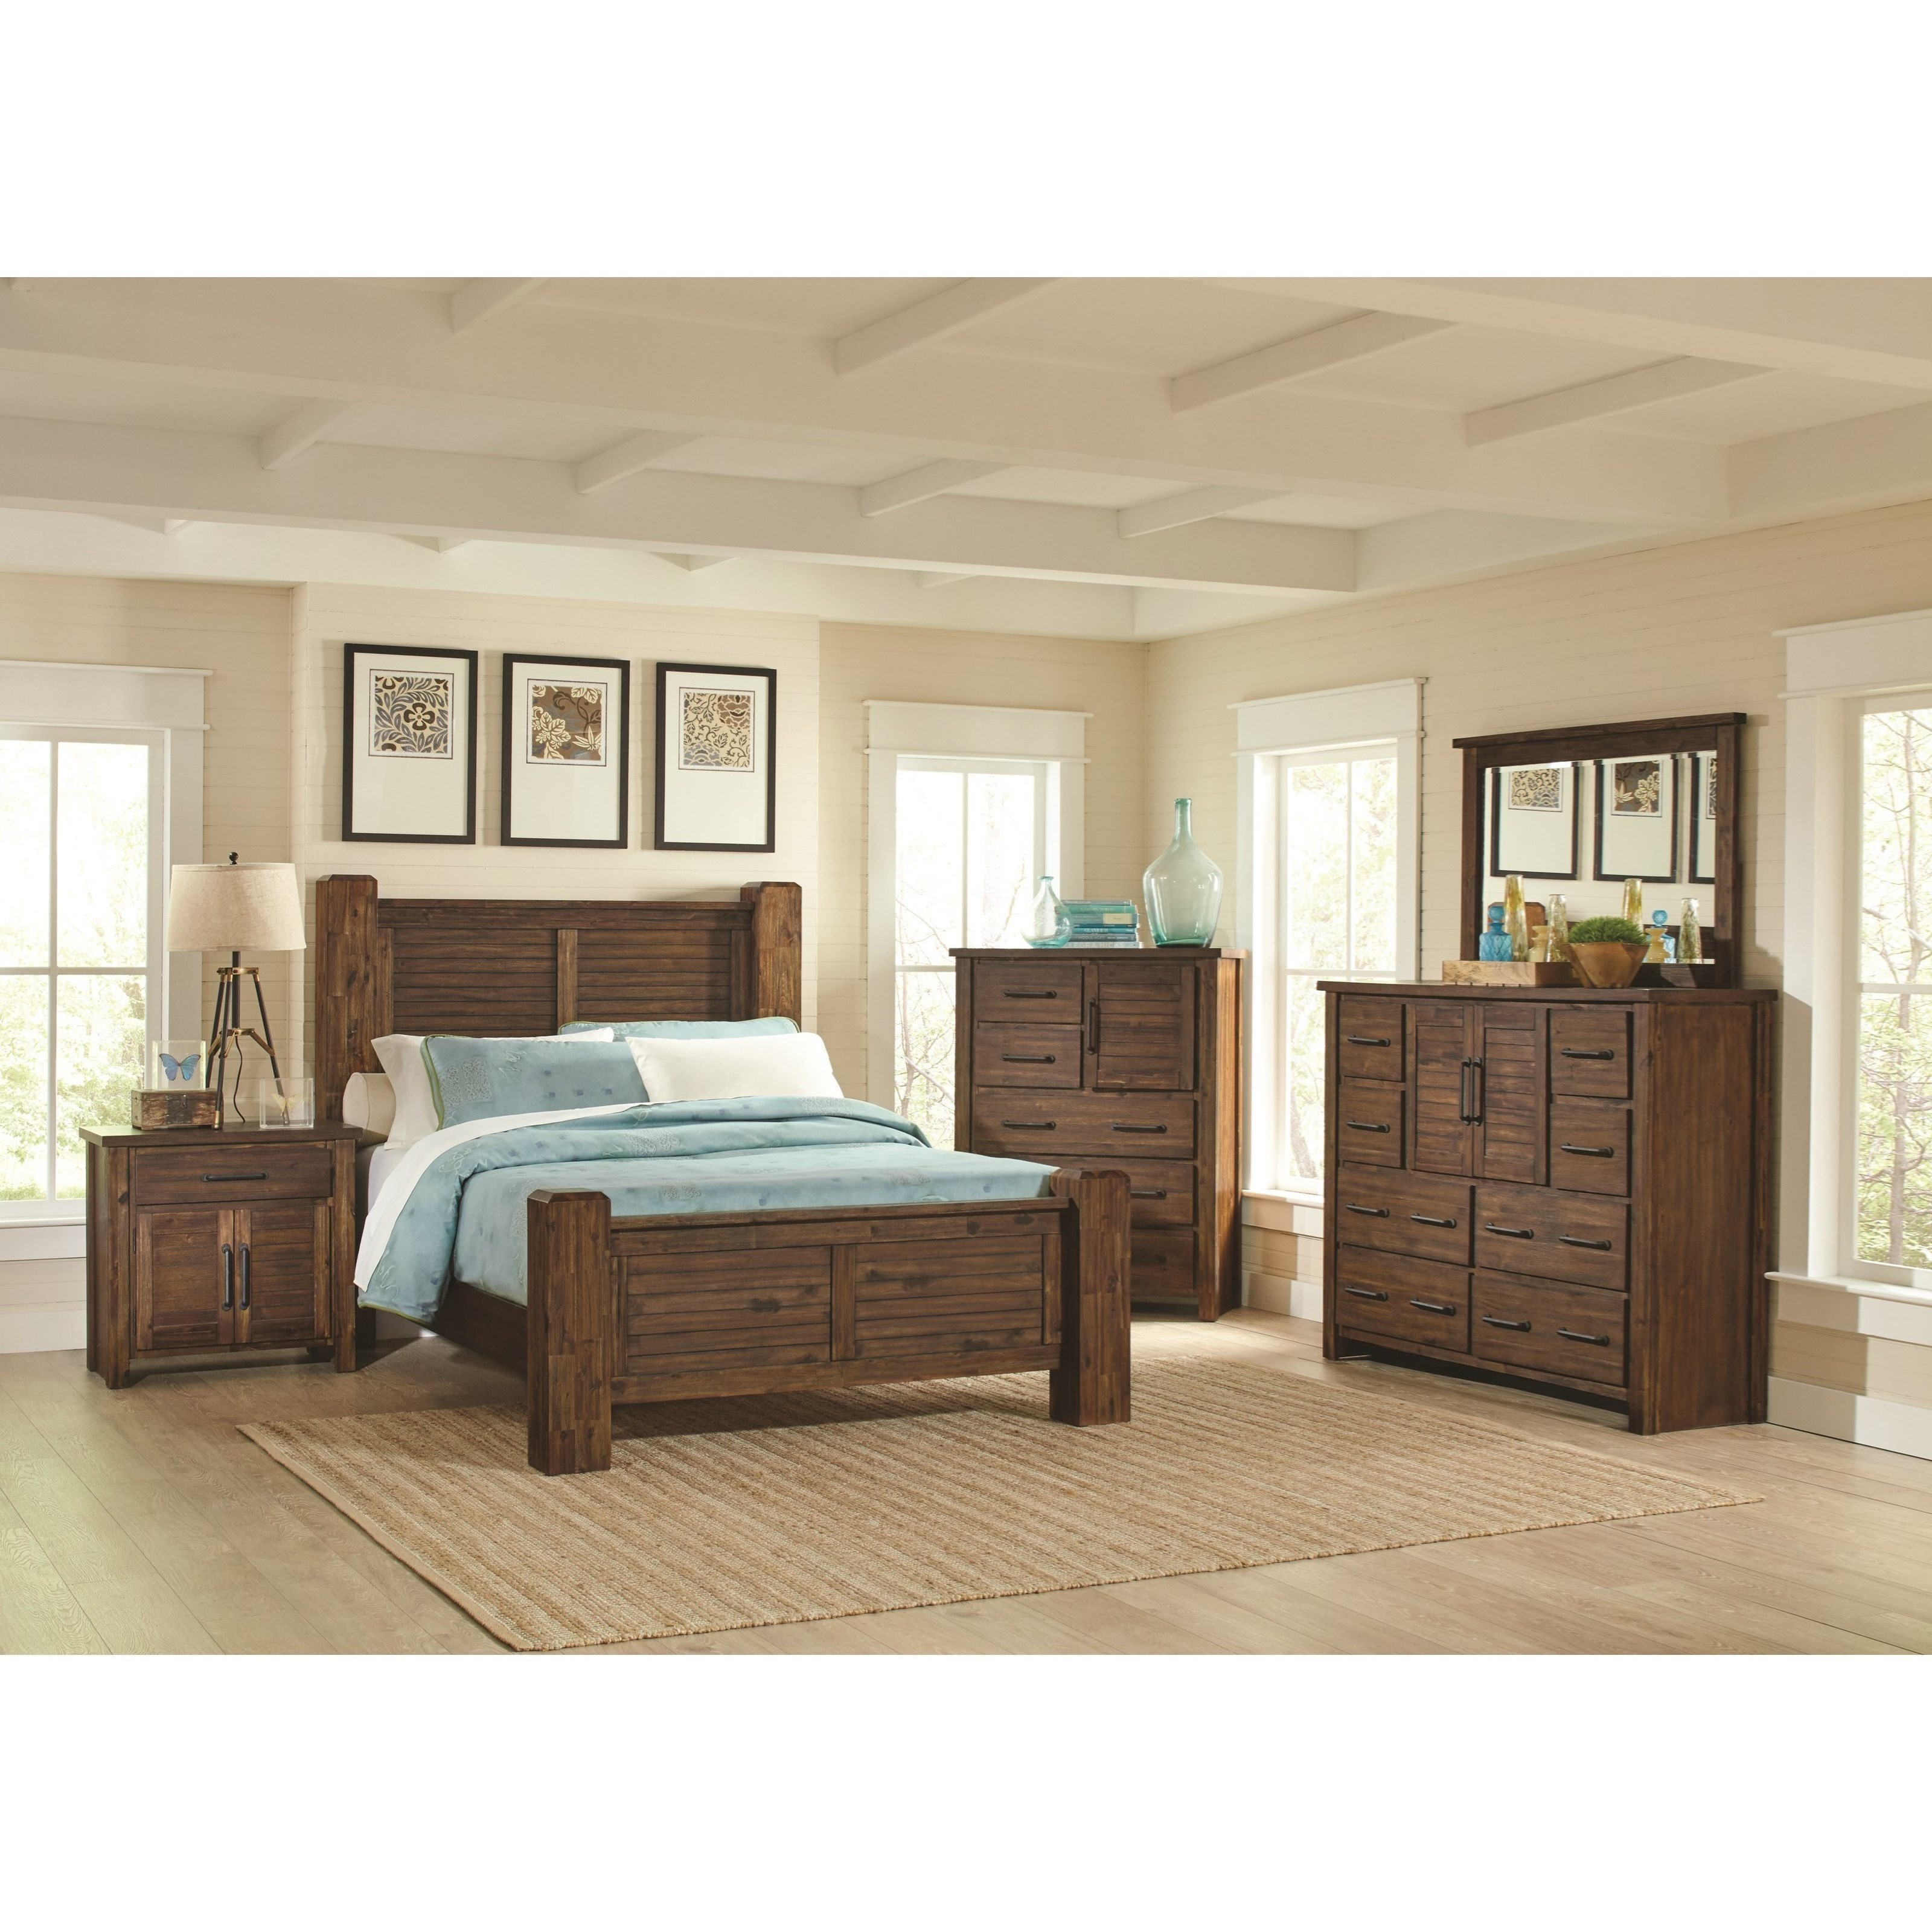 Sutter Creek 4pc Bedroom Set Furniture Mattress Los